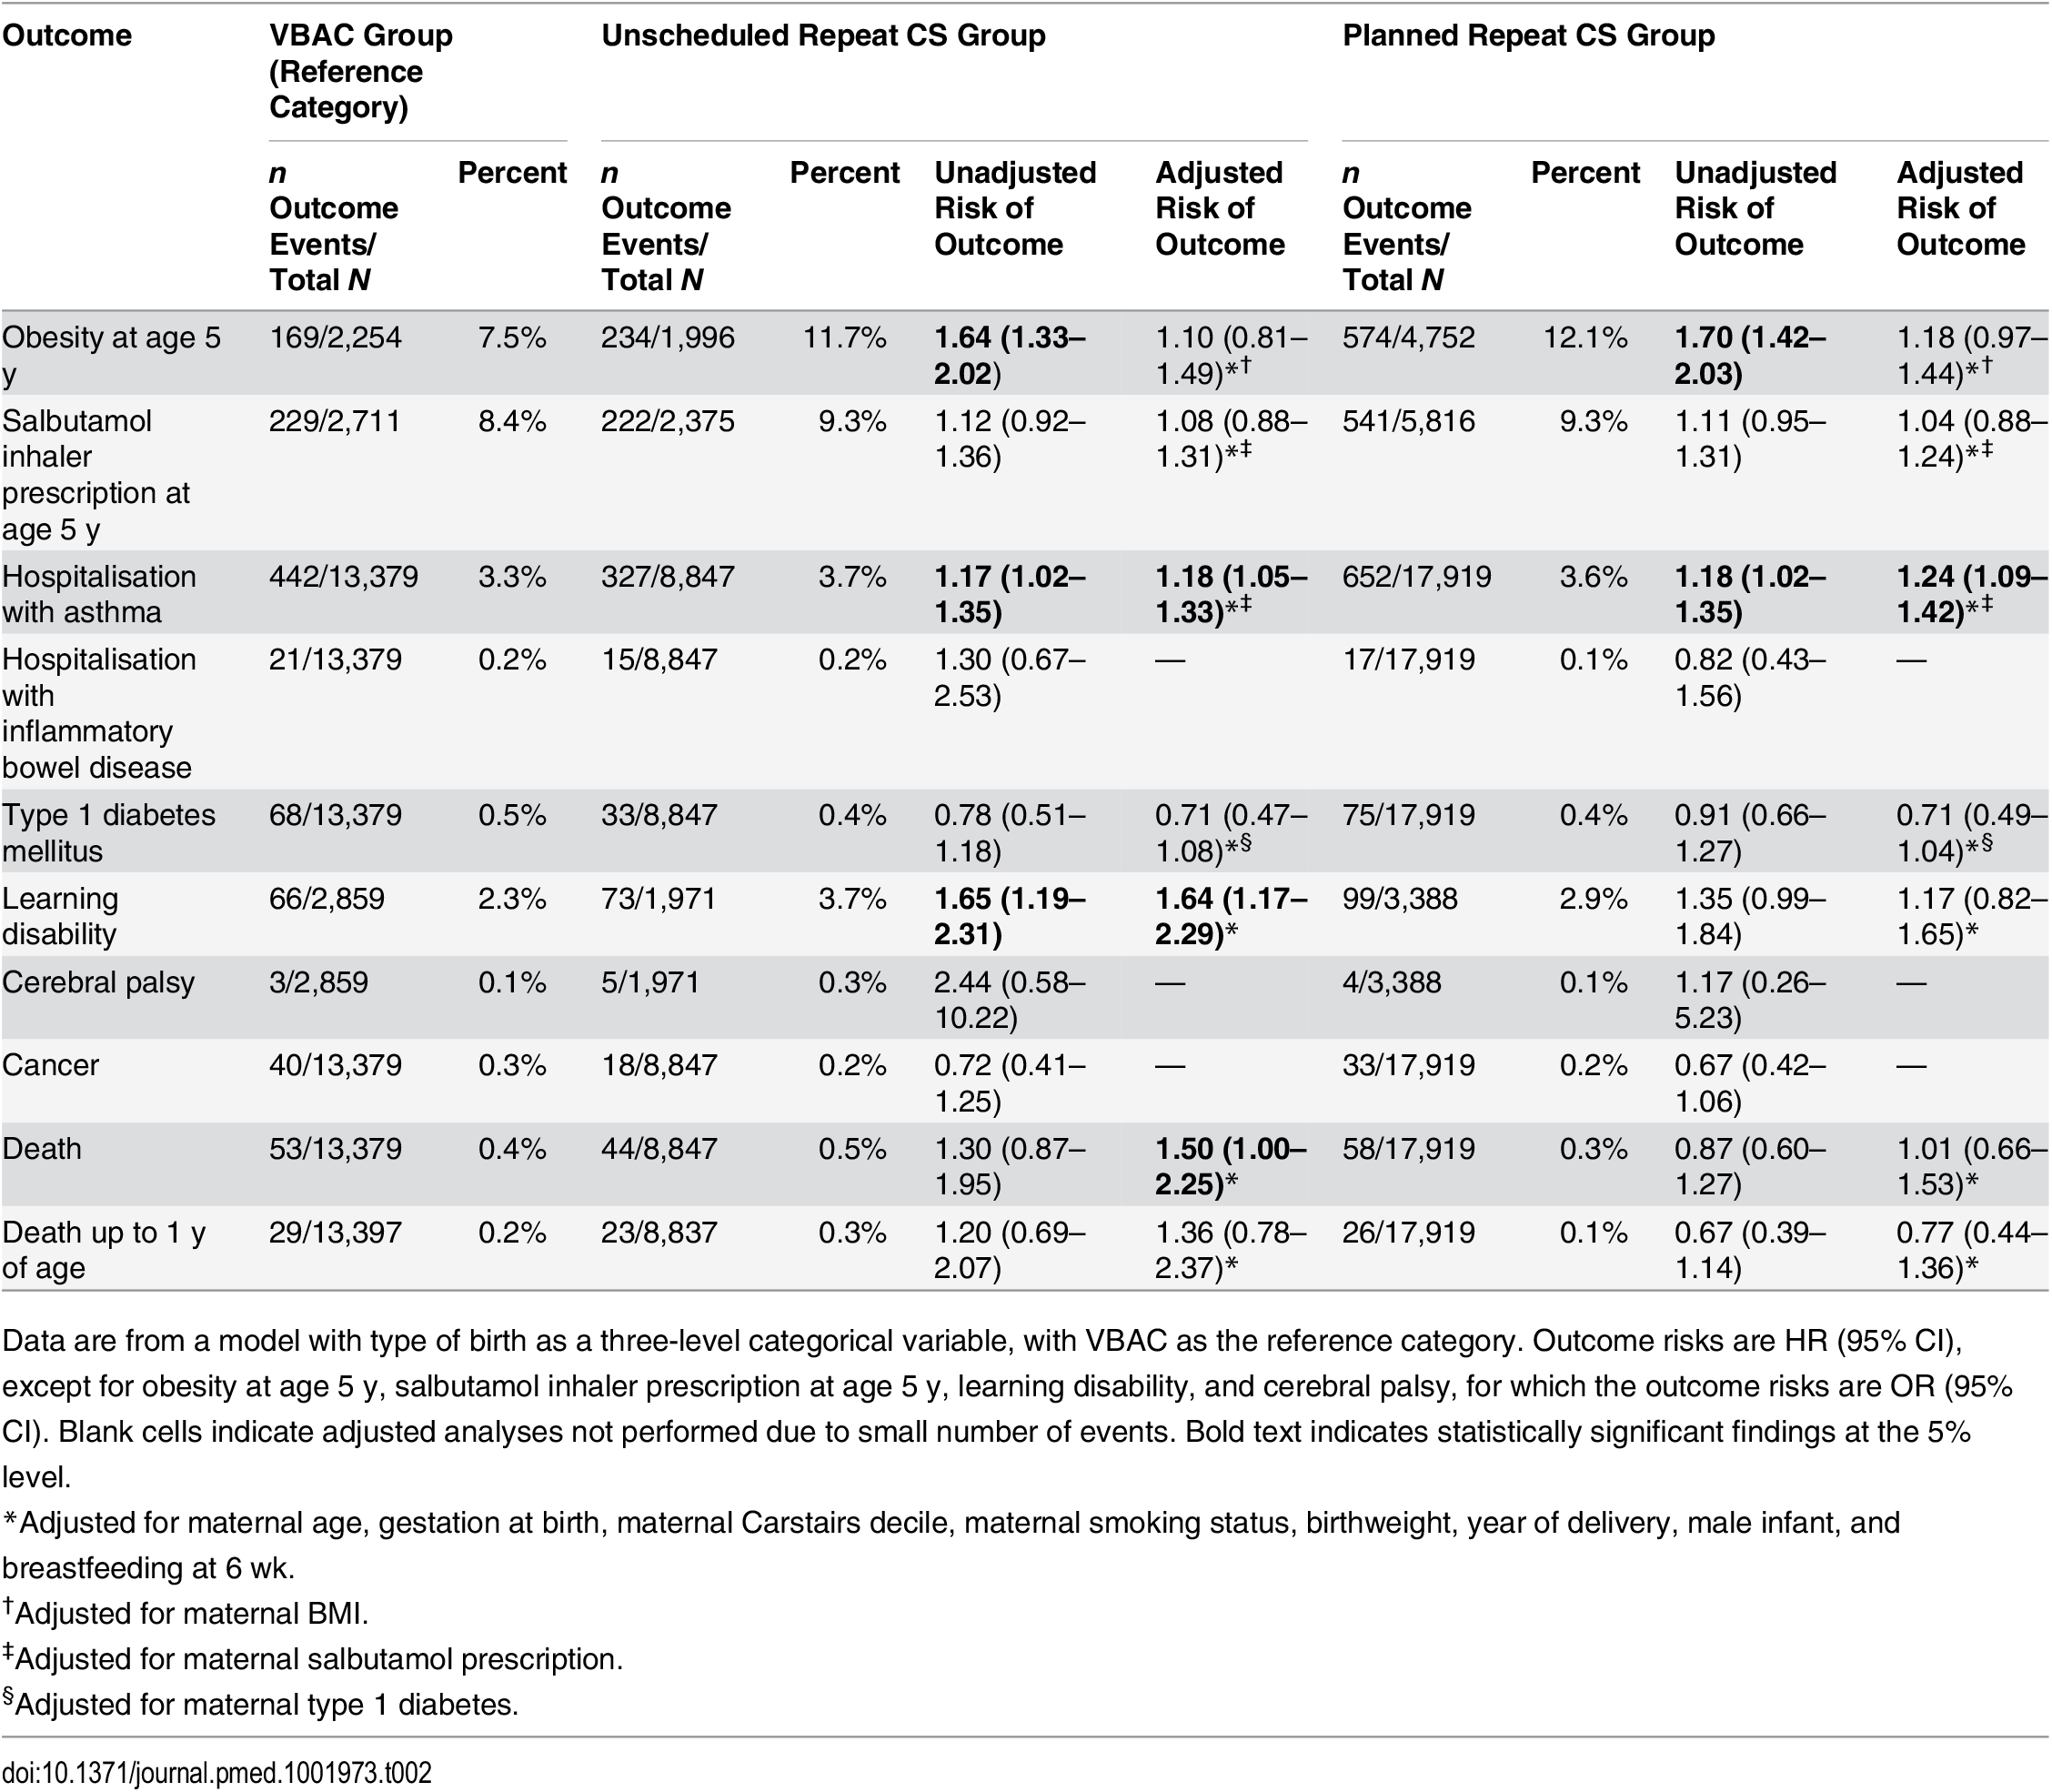 Offspring health outcomes after planned repeat cesarean and unscheduled repeat cesarean compared with after VBAC.